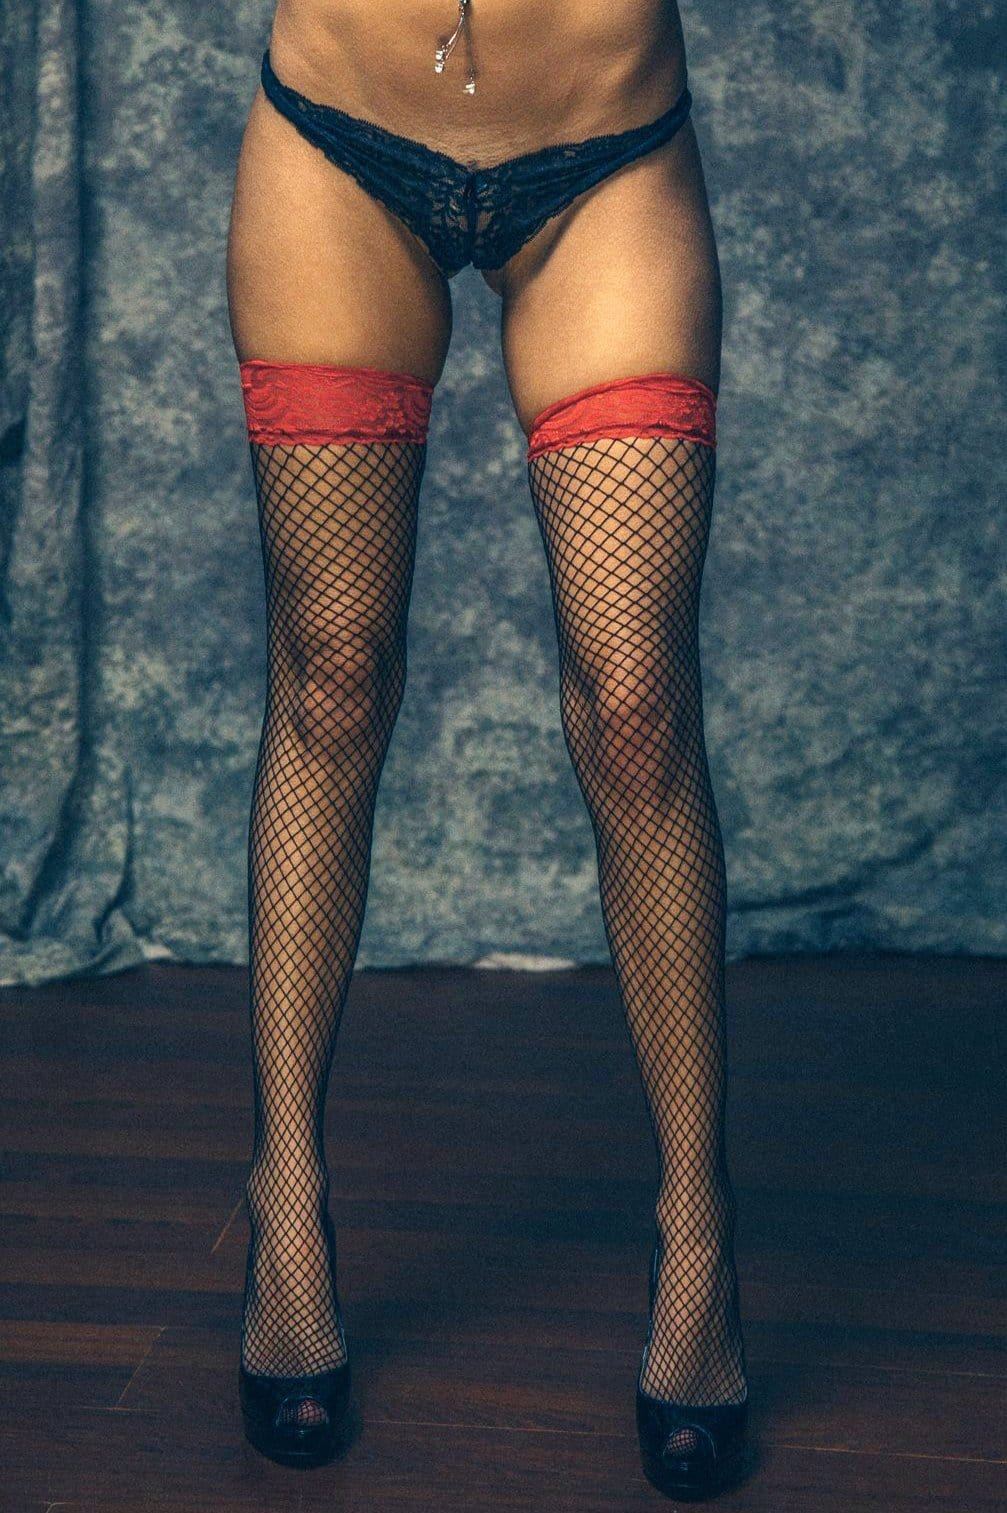 Black fishnet thigh highs sock / stockings with red elastic tops -Lingerie - Cali Diamond